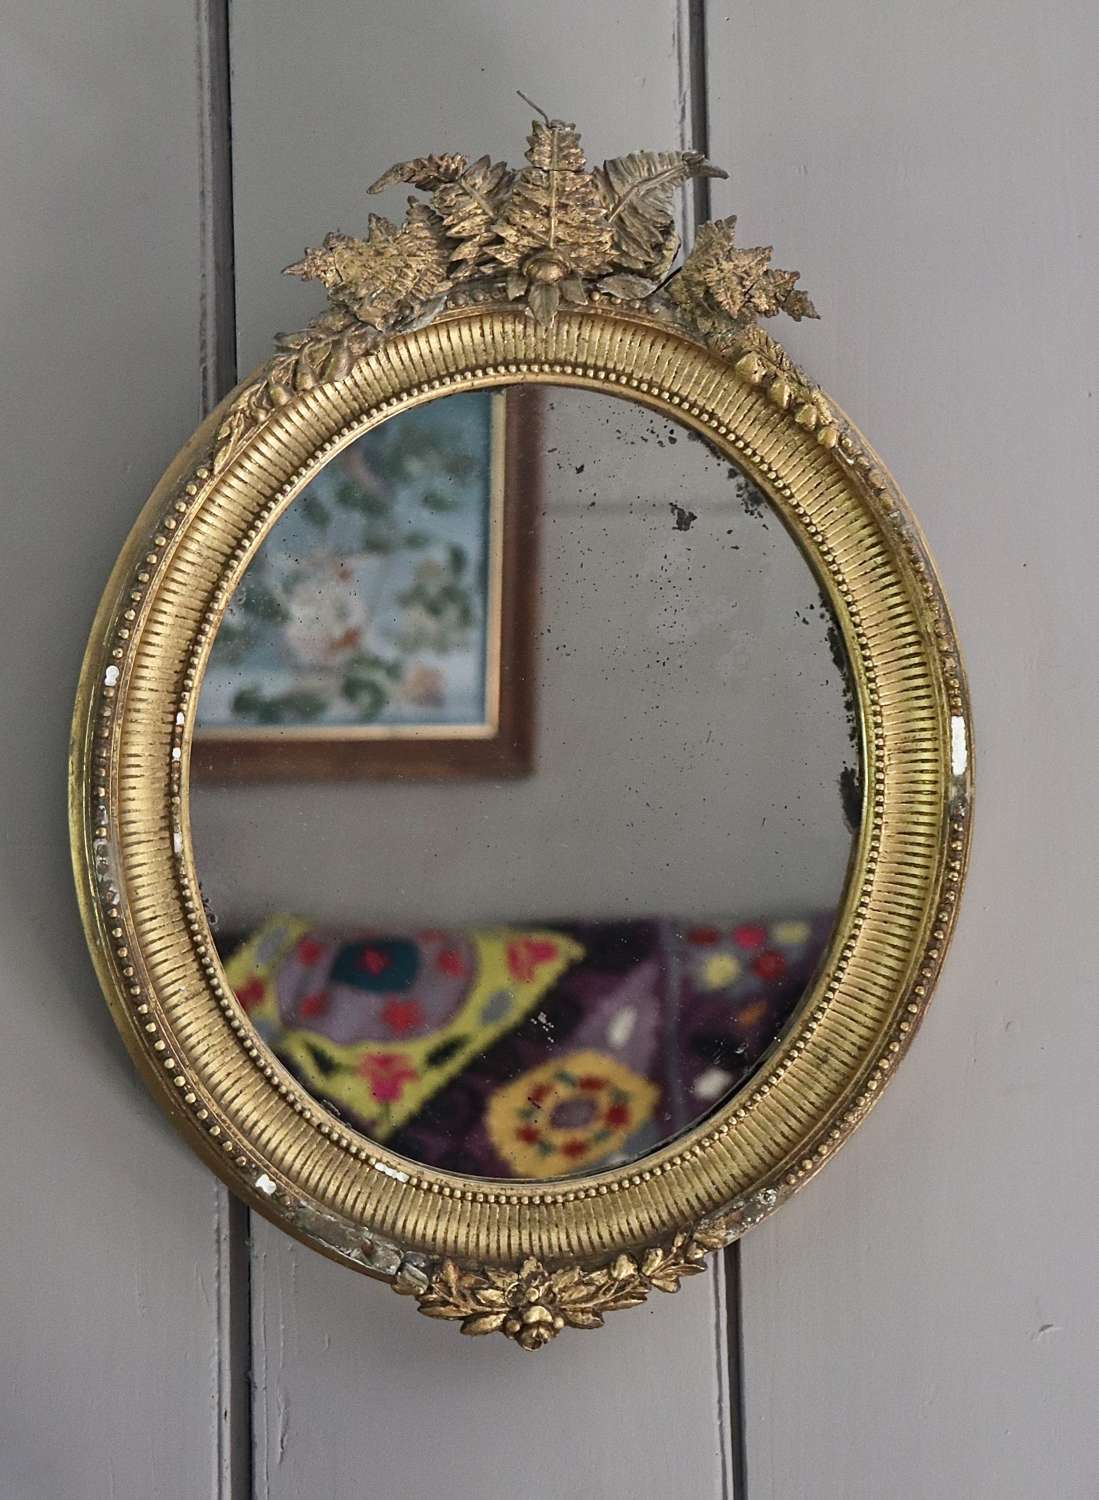 Early 20th century gilt framed mirror